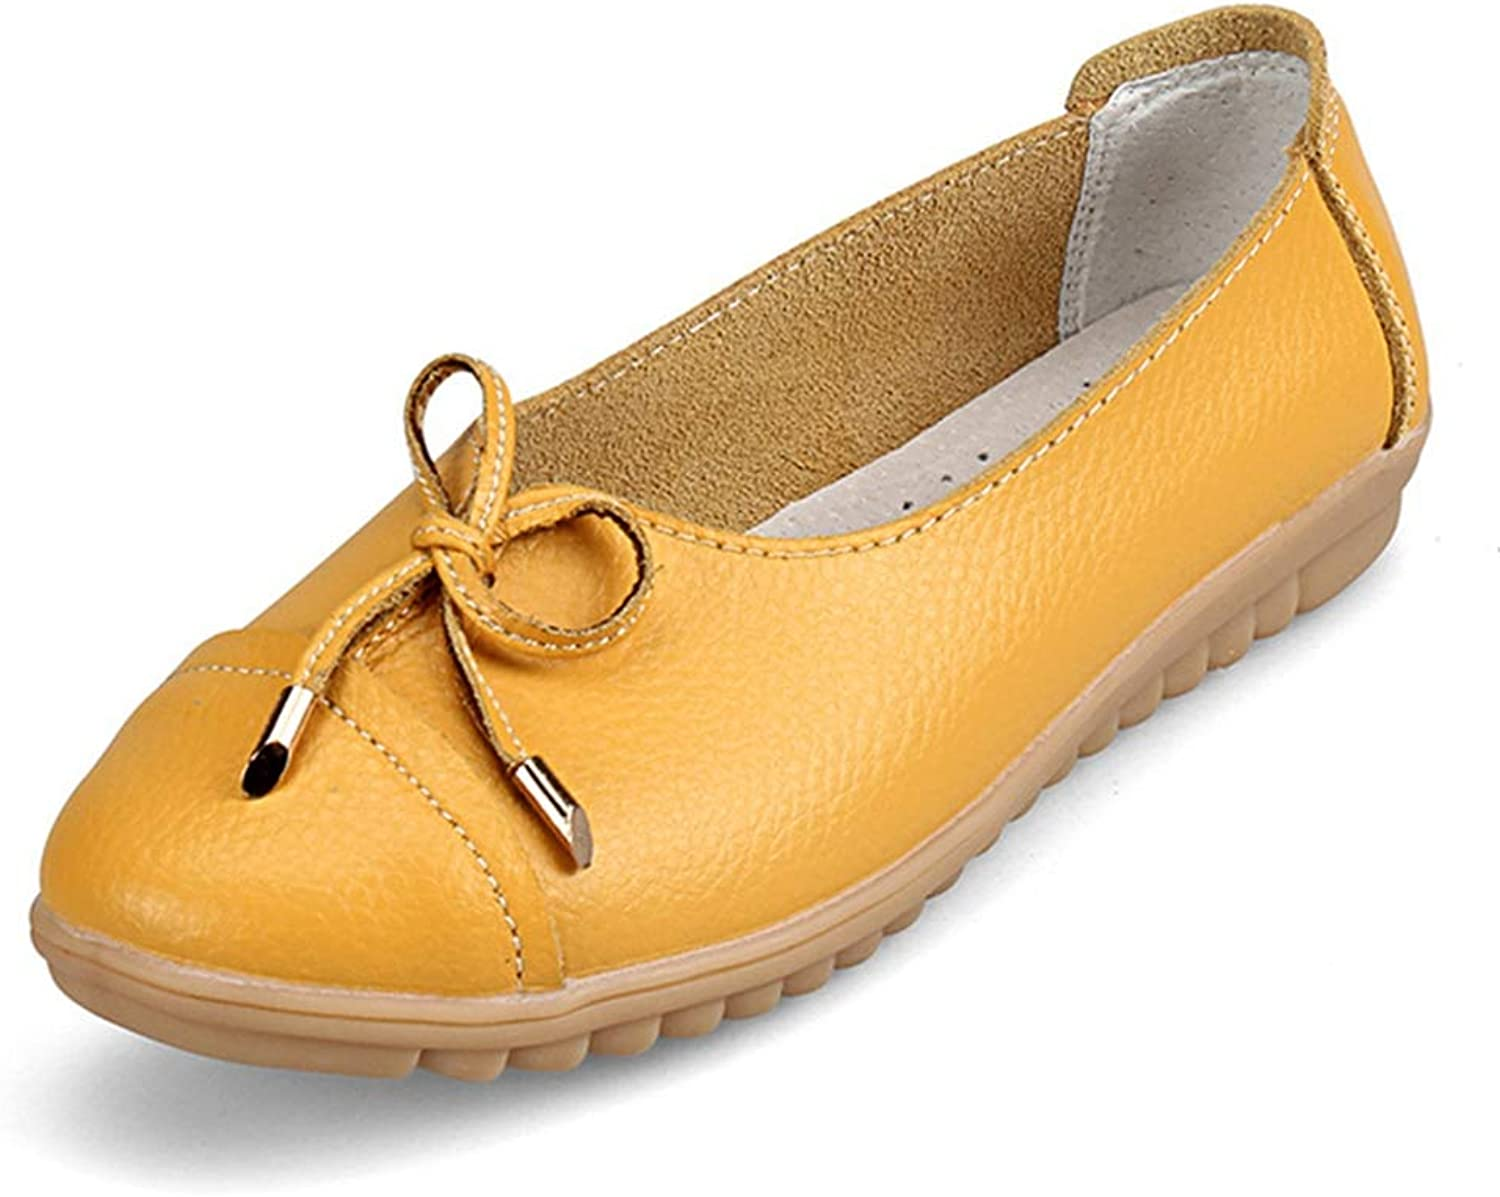 August Jim Women Loafers shoes,Low Heel Non-Slip Soft Leisure Flats shoes